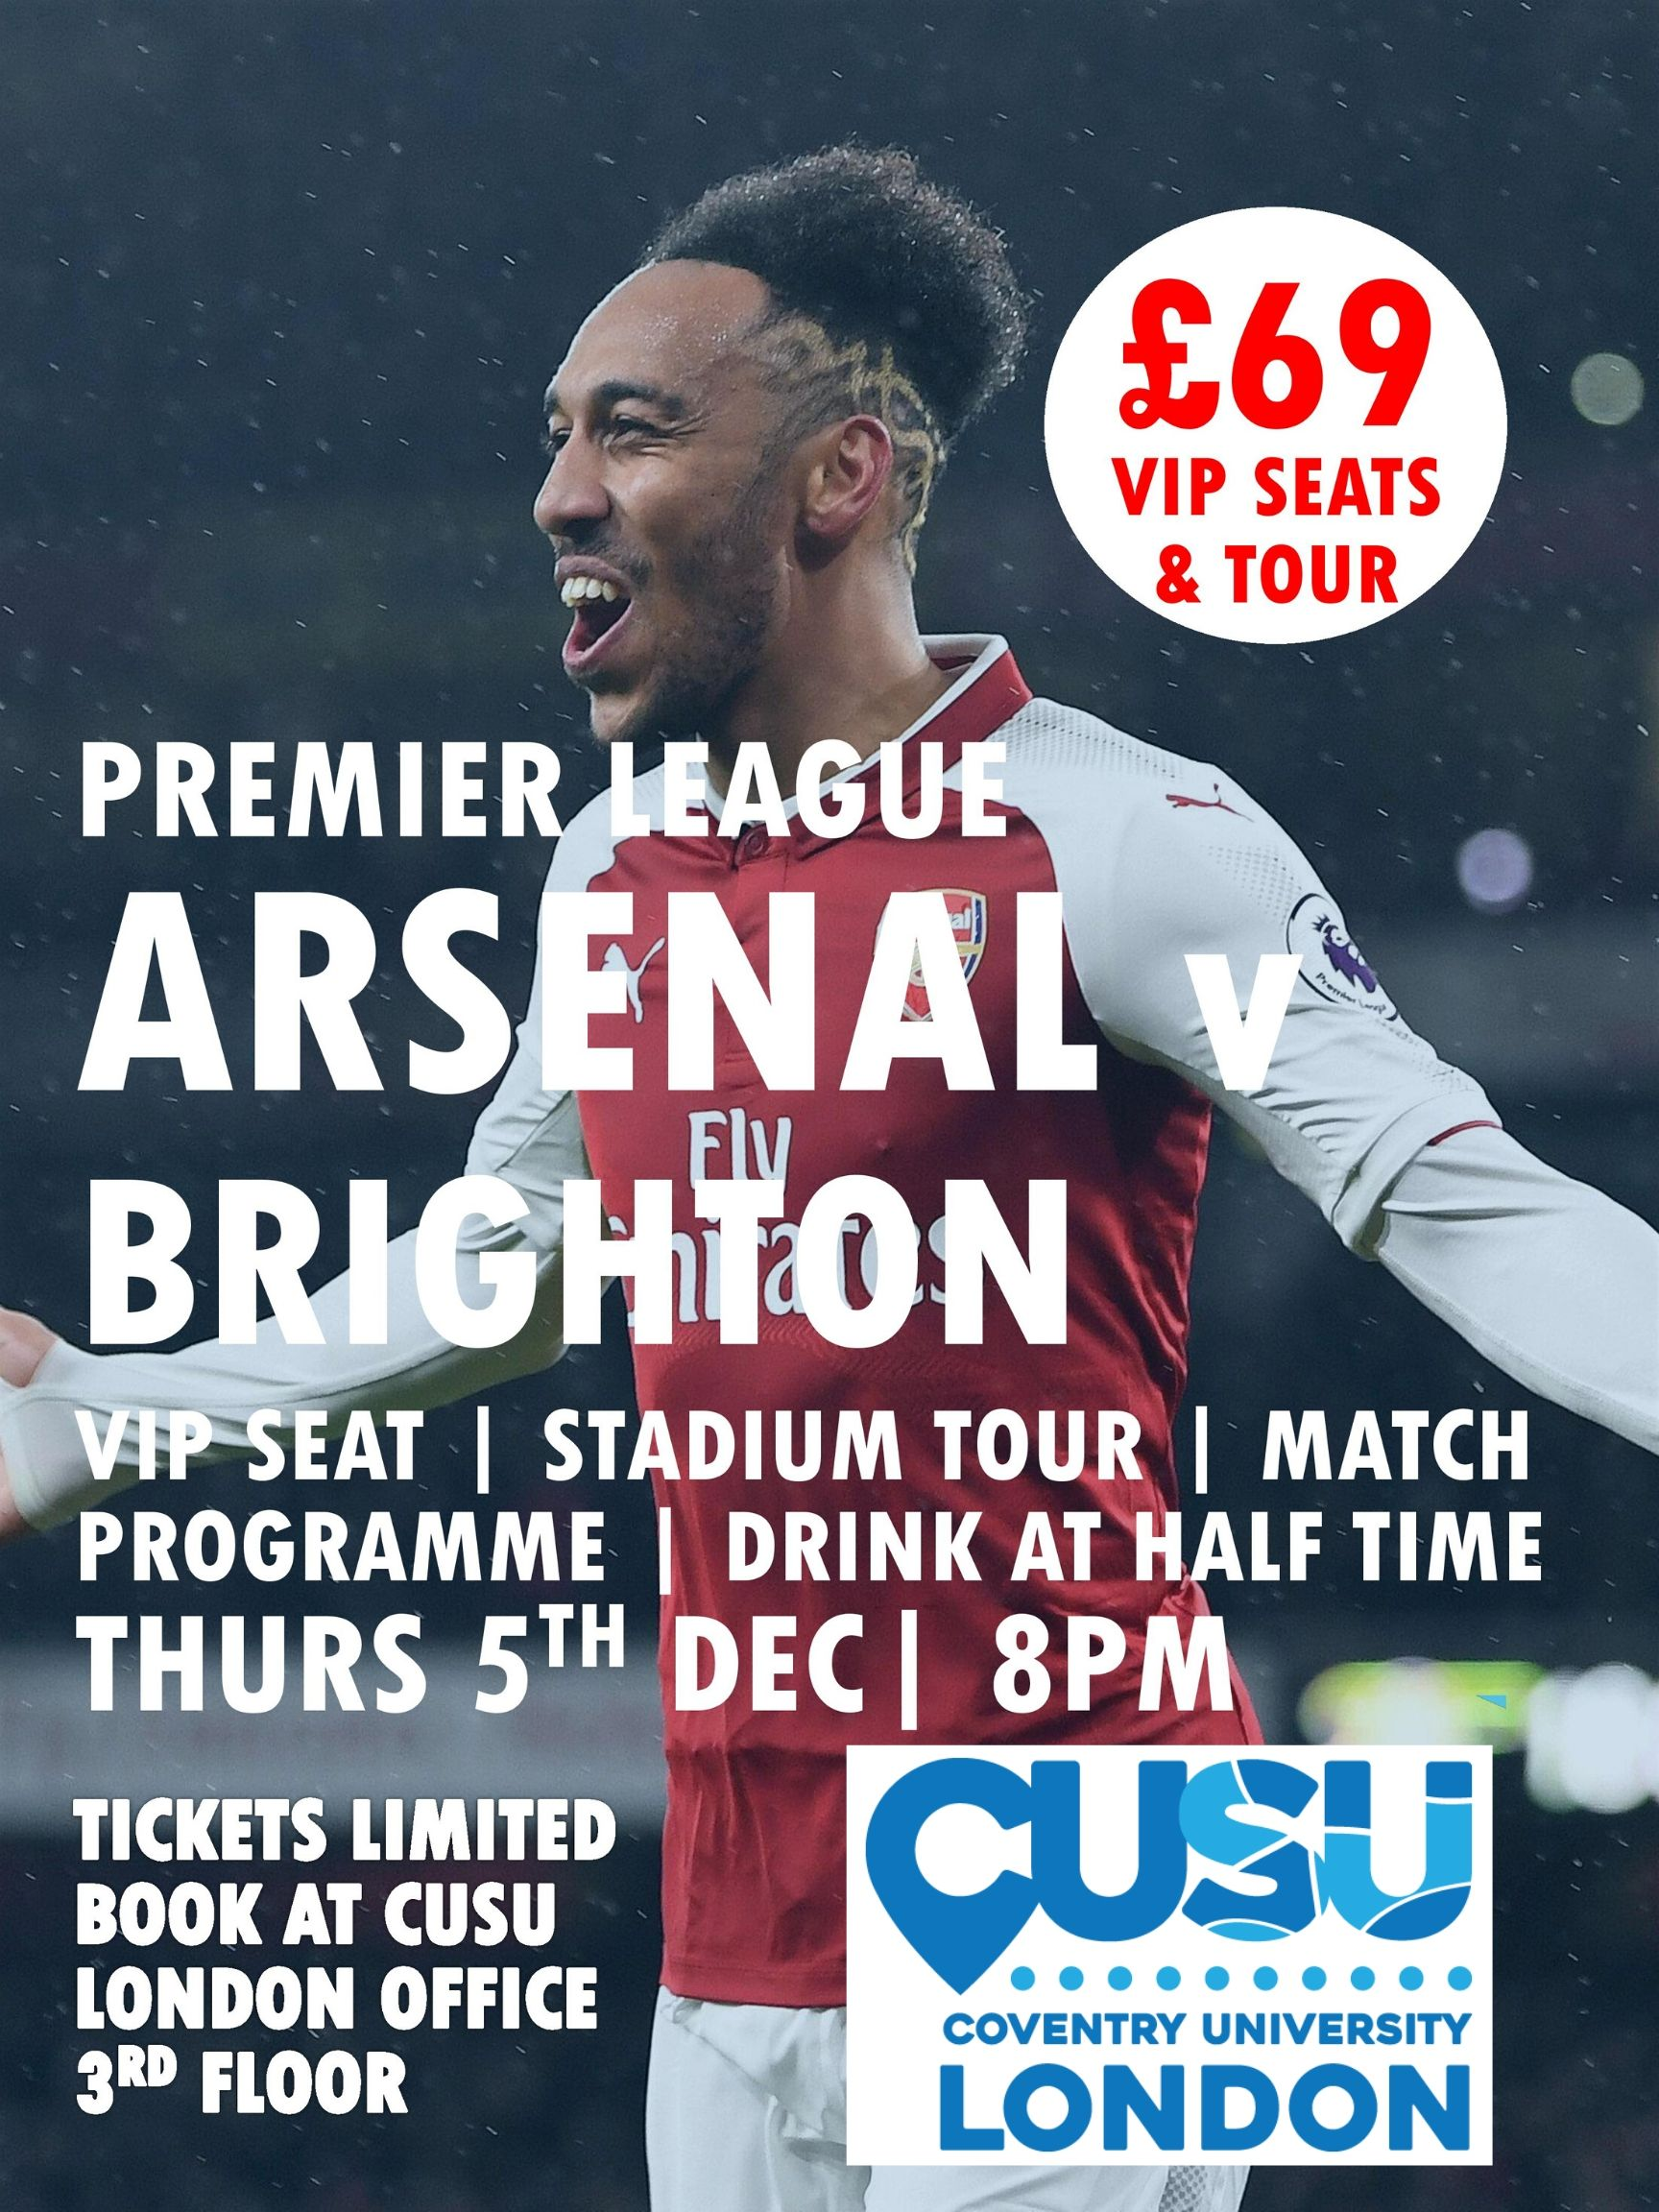 Arsenal vs Brighton Premier League Match